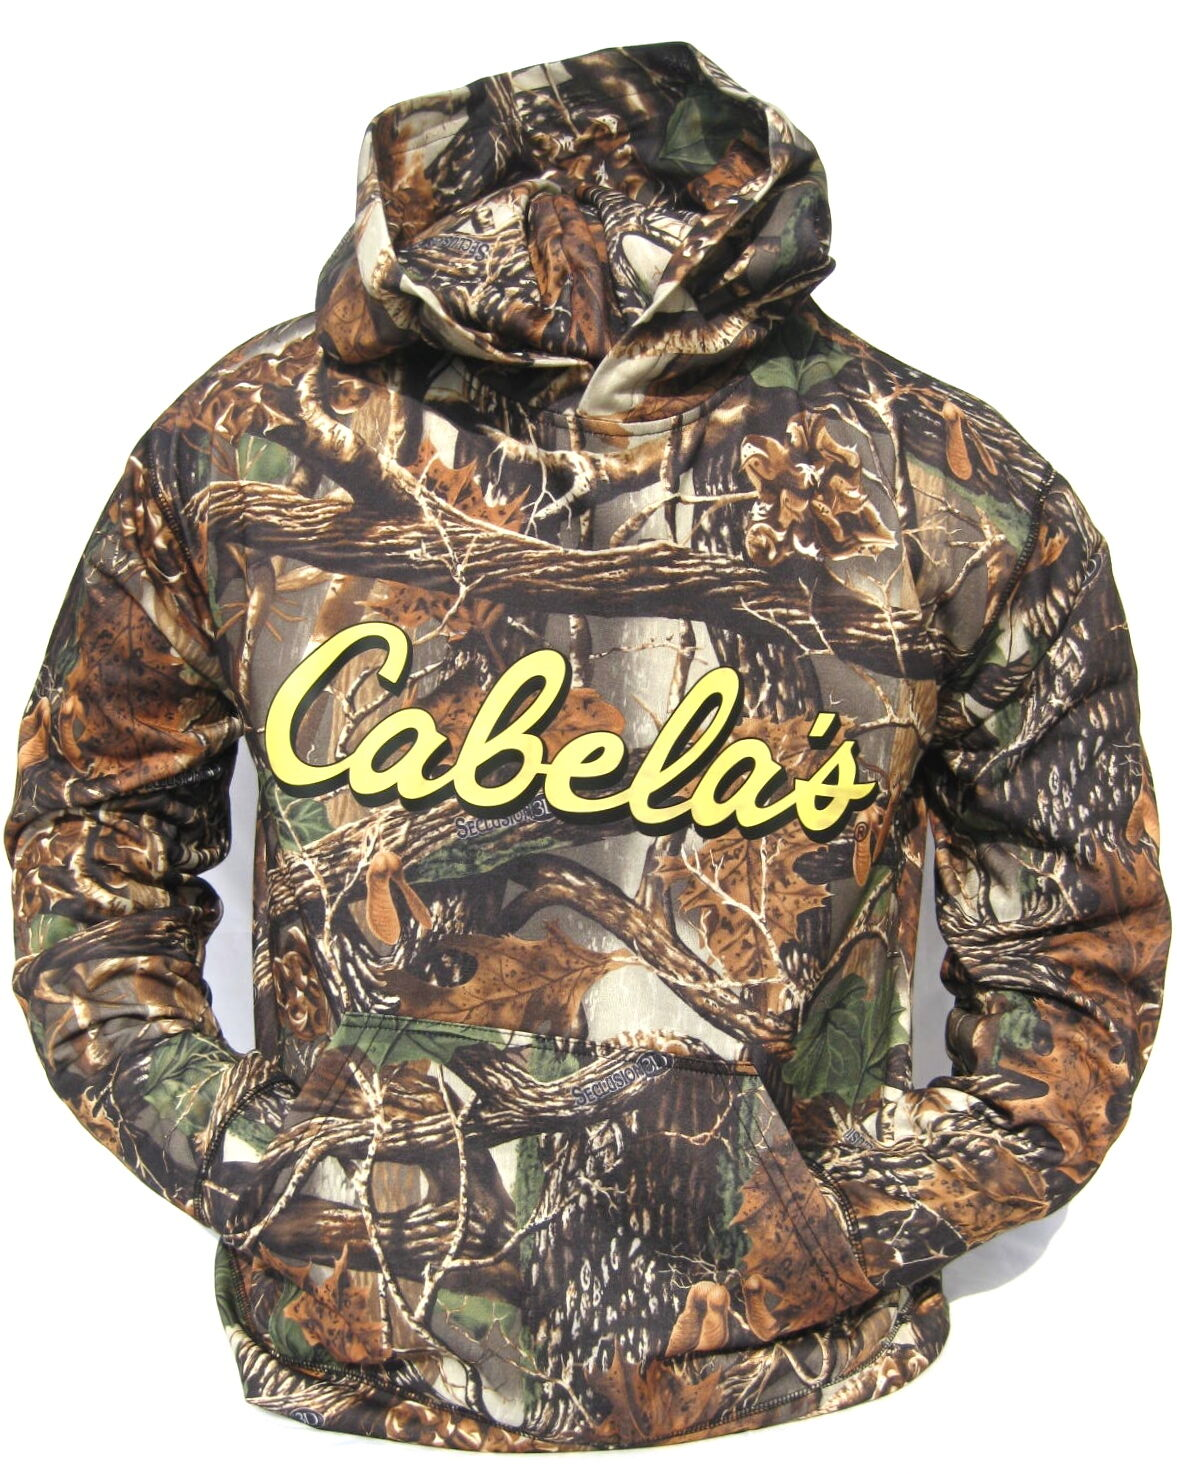 Cabela's Performance Seclusion 3d Ultra Quiet Hunting Hoodie M, L, Xl, 2xl